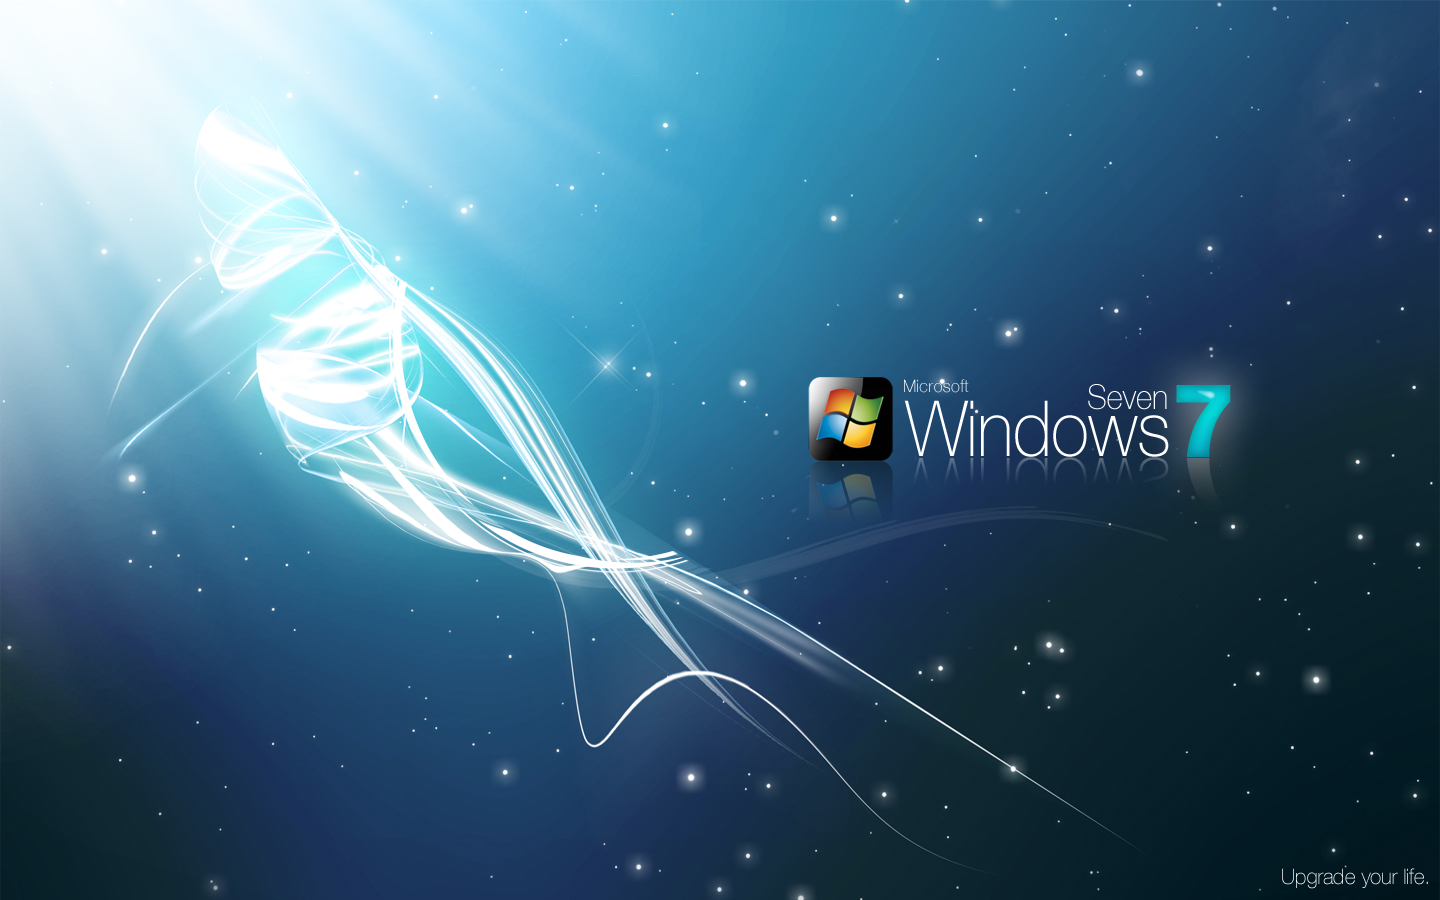 Free Windows Themed Desktop Wallpapers Desktop Wallpaper